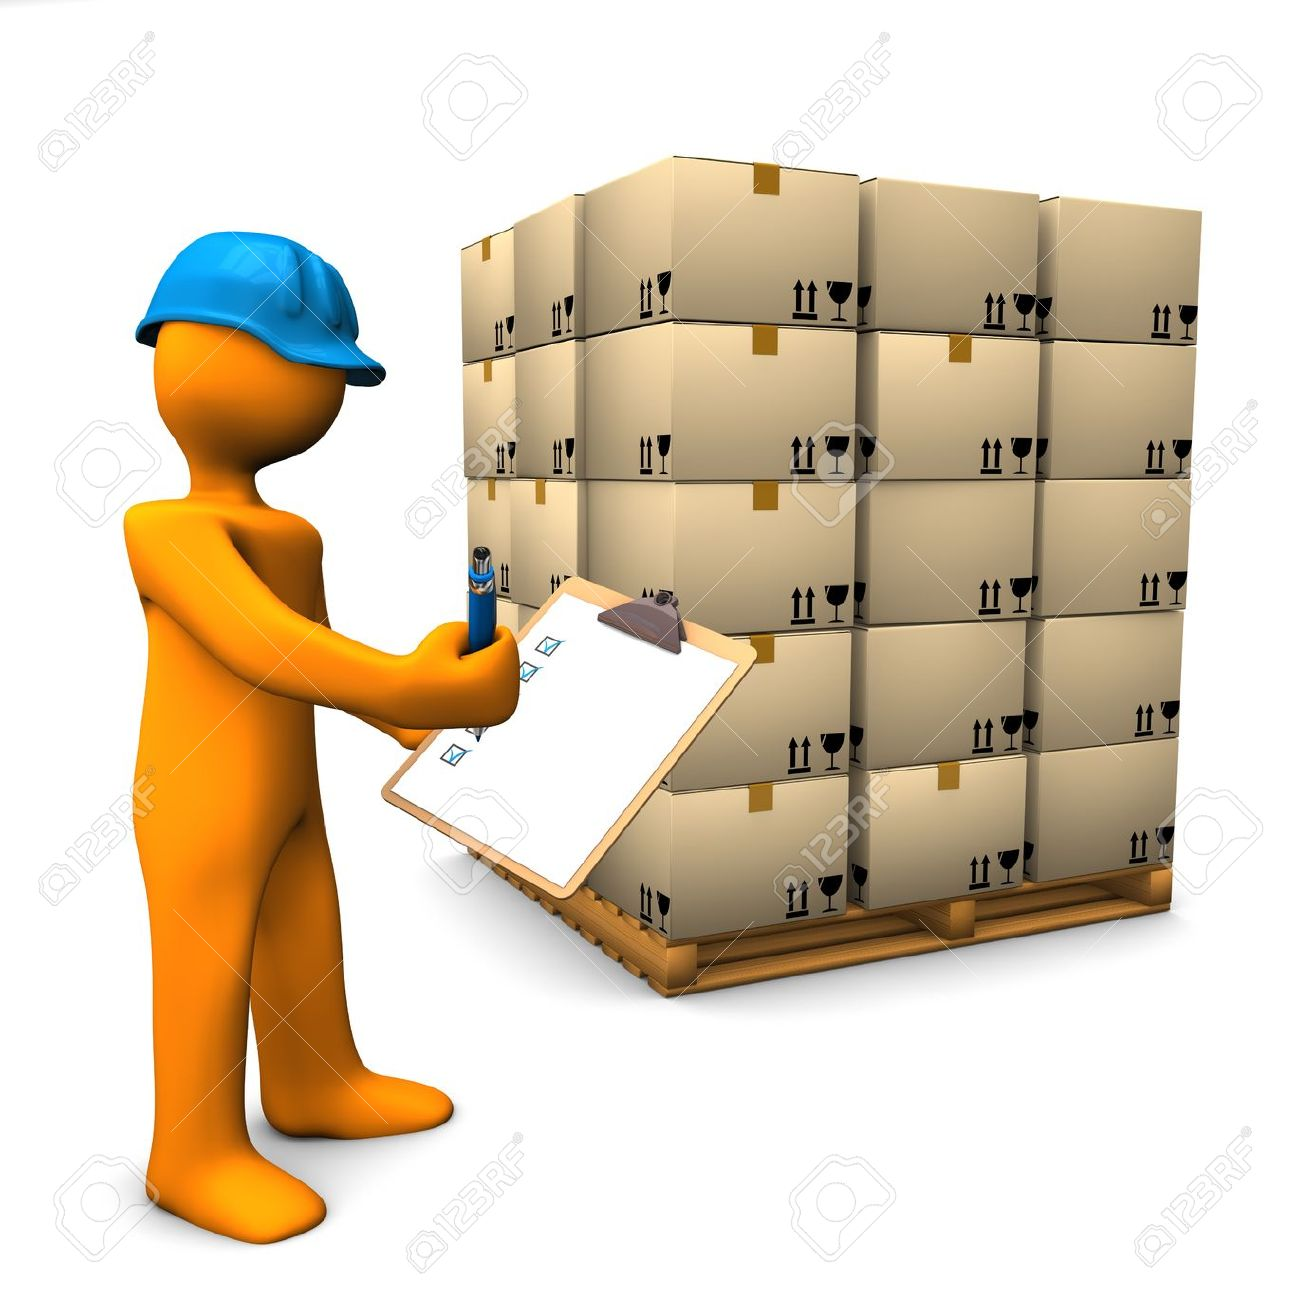 Inventory management clipart » Clipart Station.